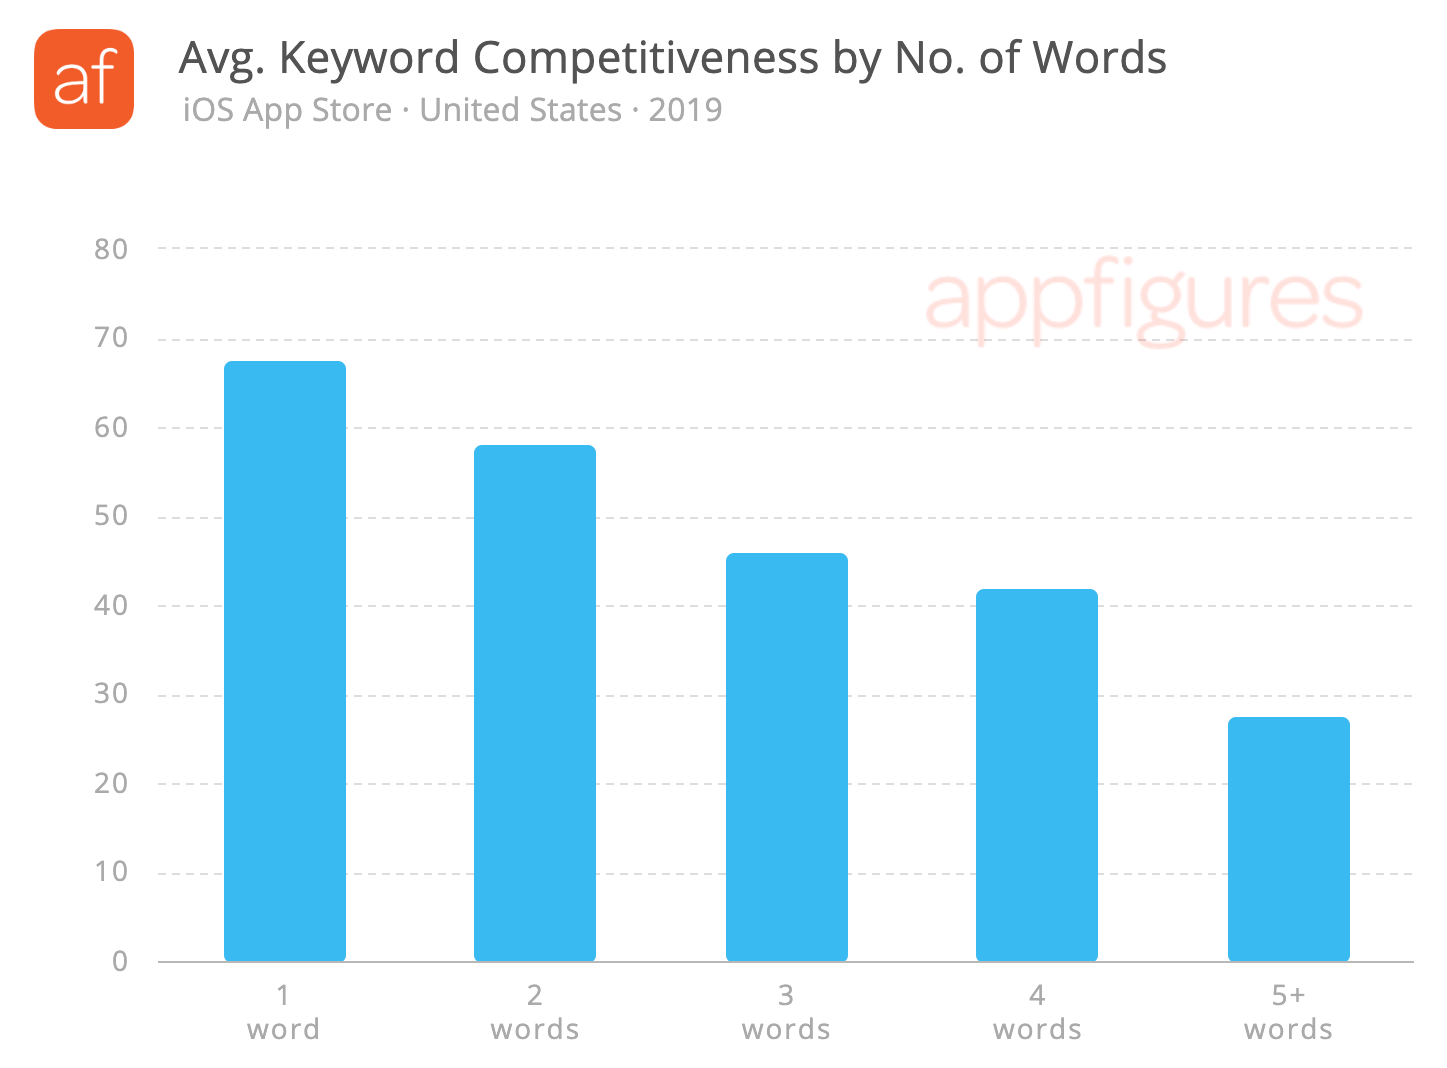 More words = less competition. For now...